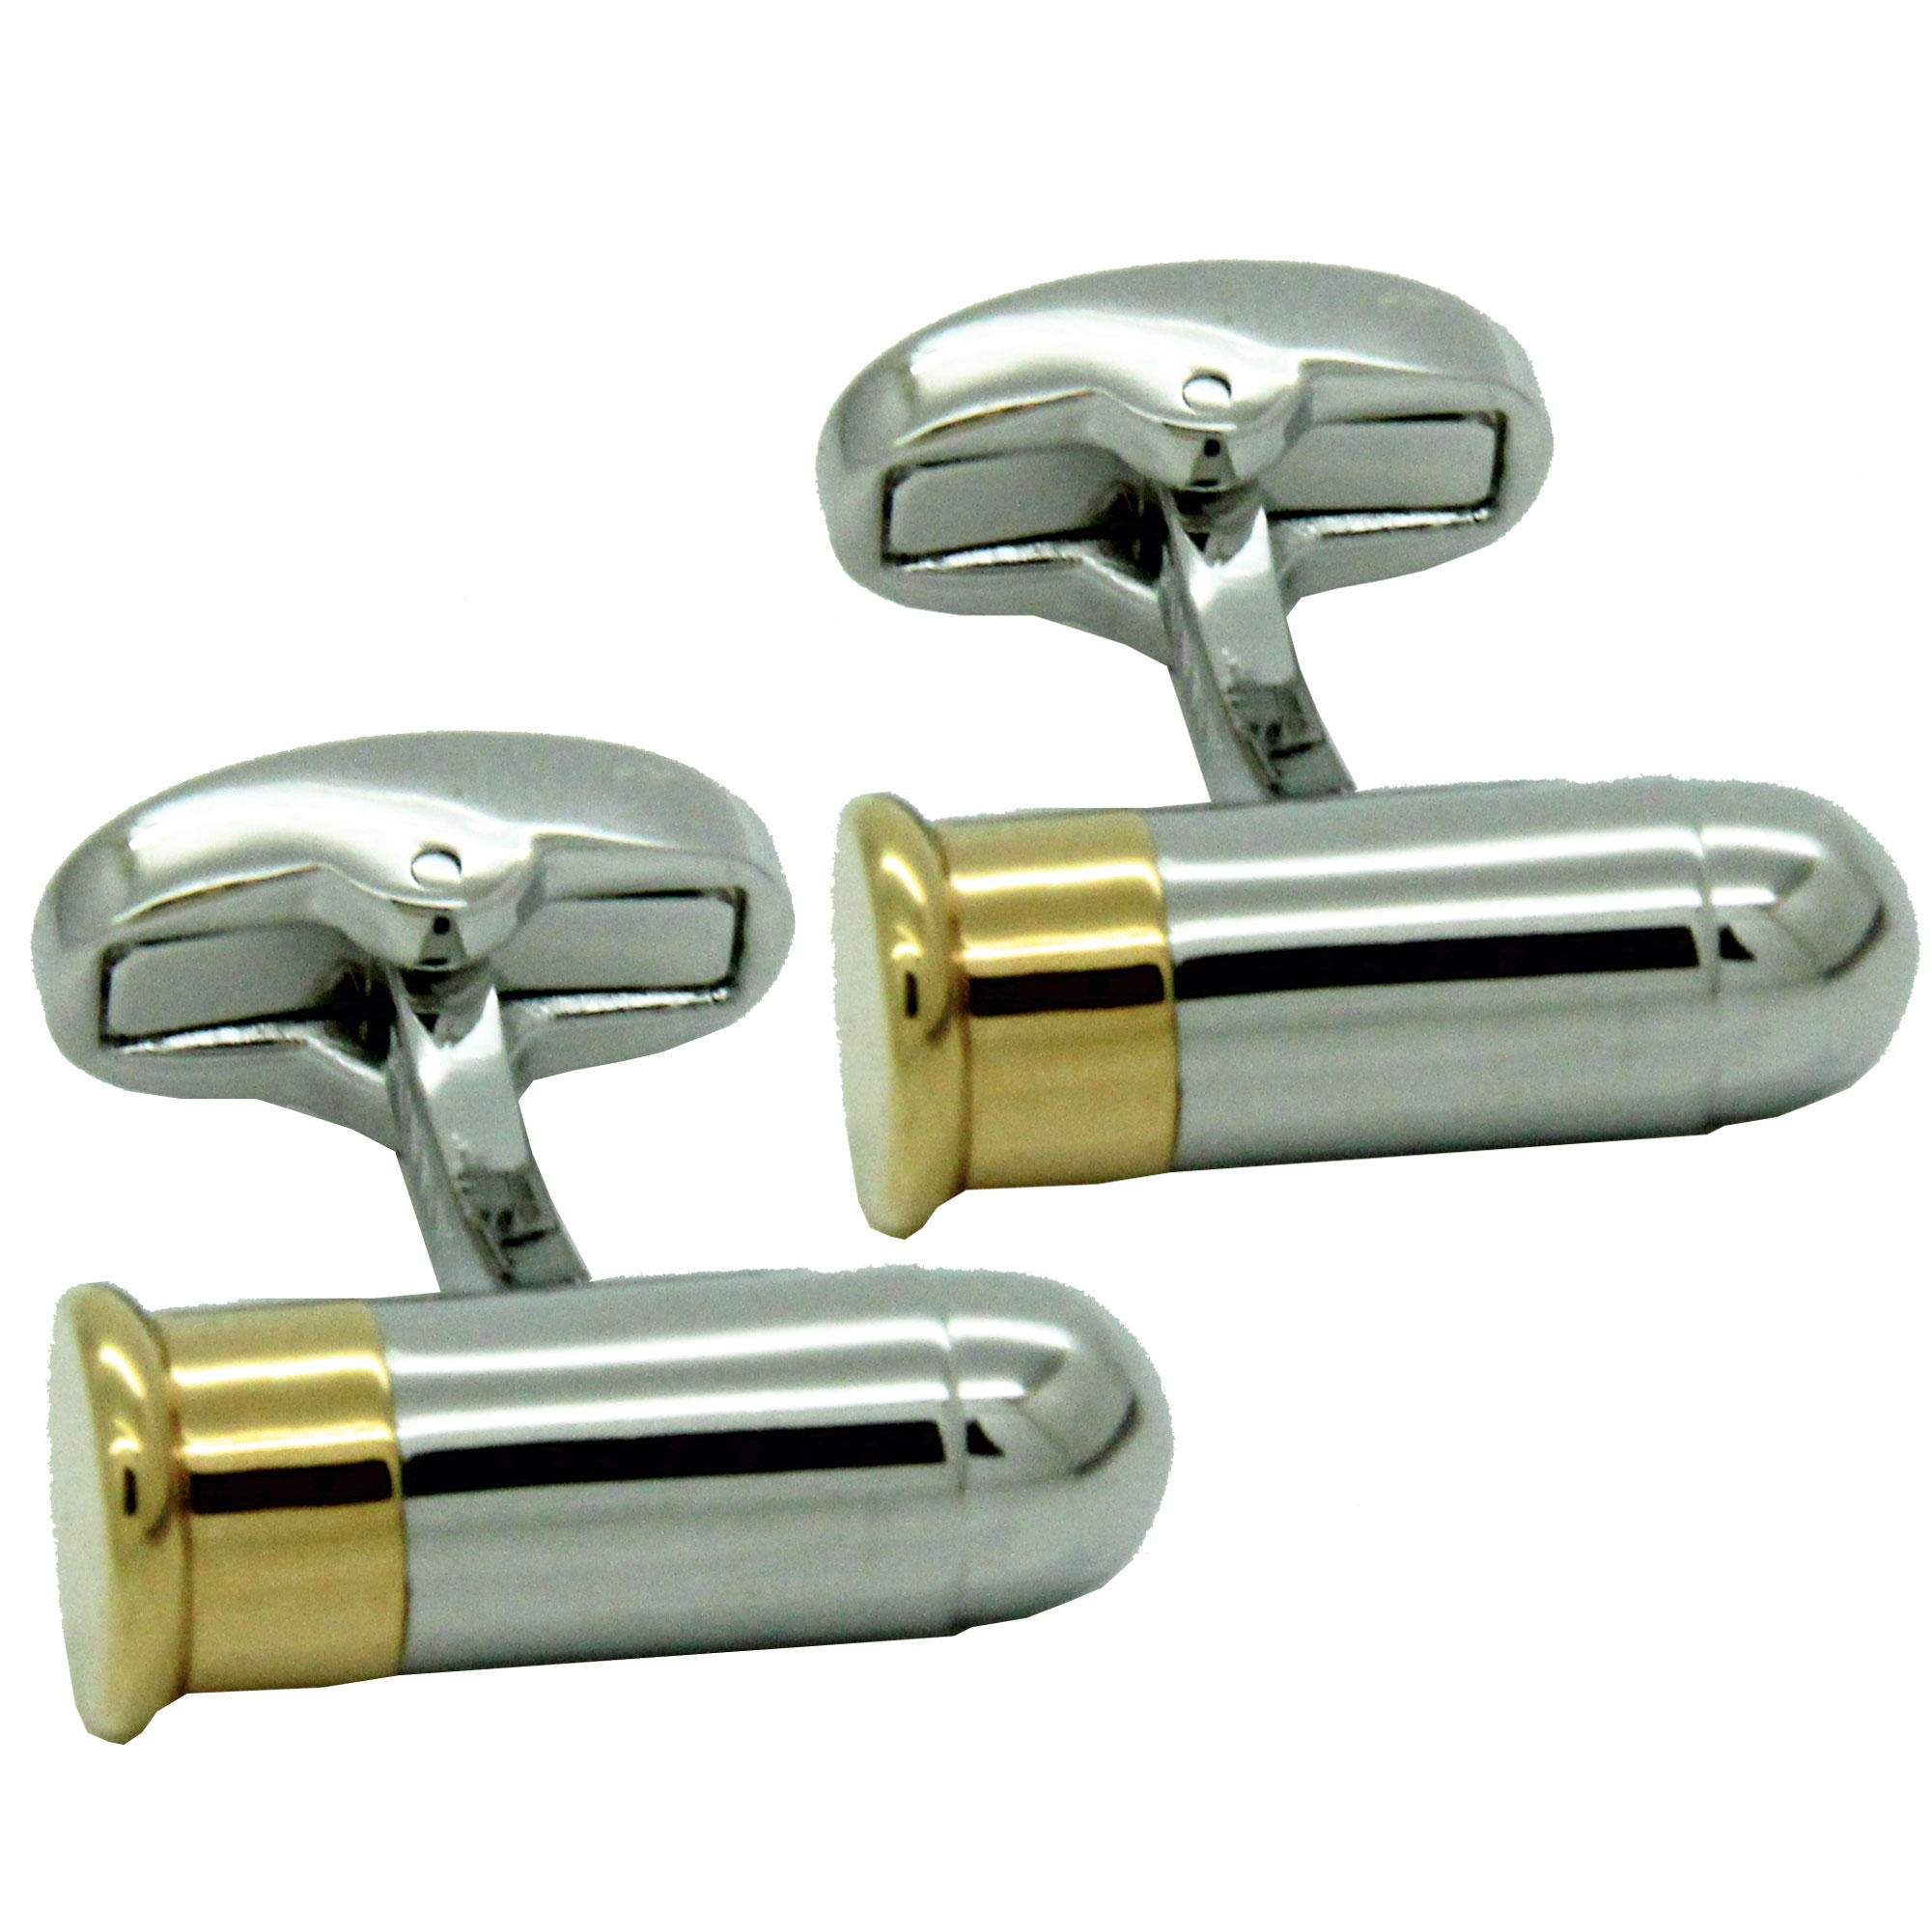 Bullet Cufflinks from Cuffs & Co